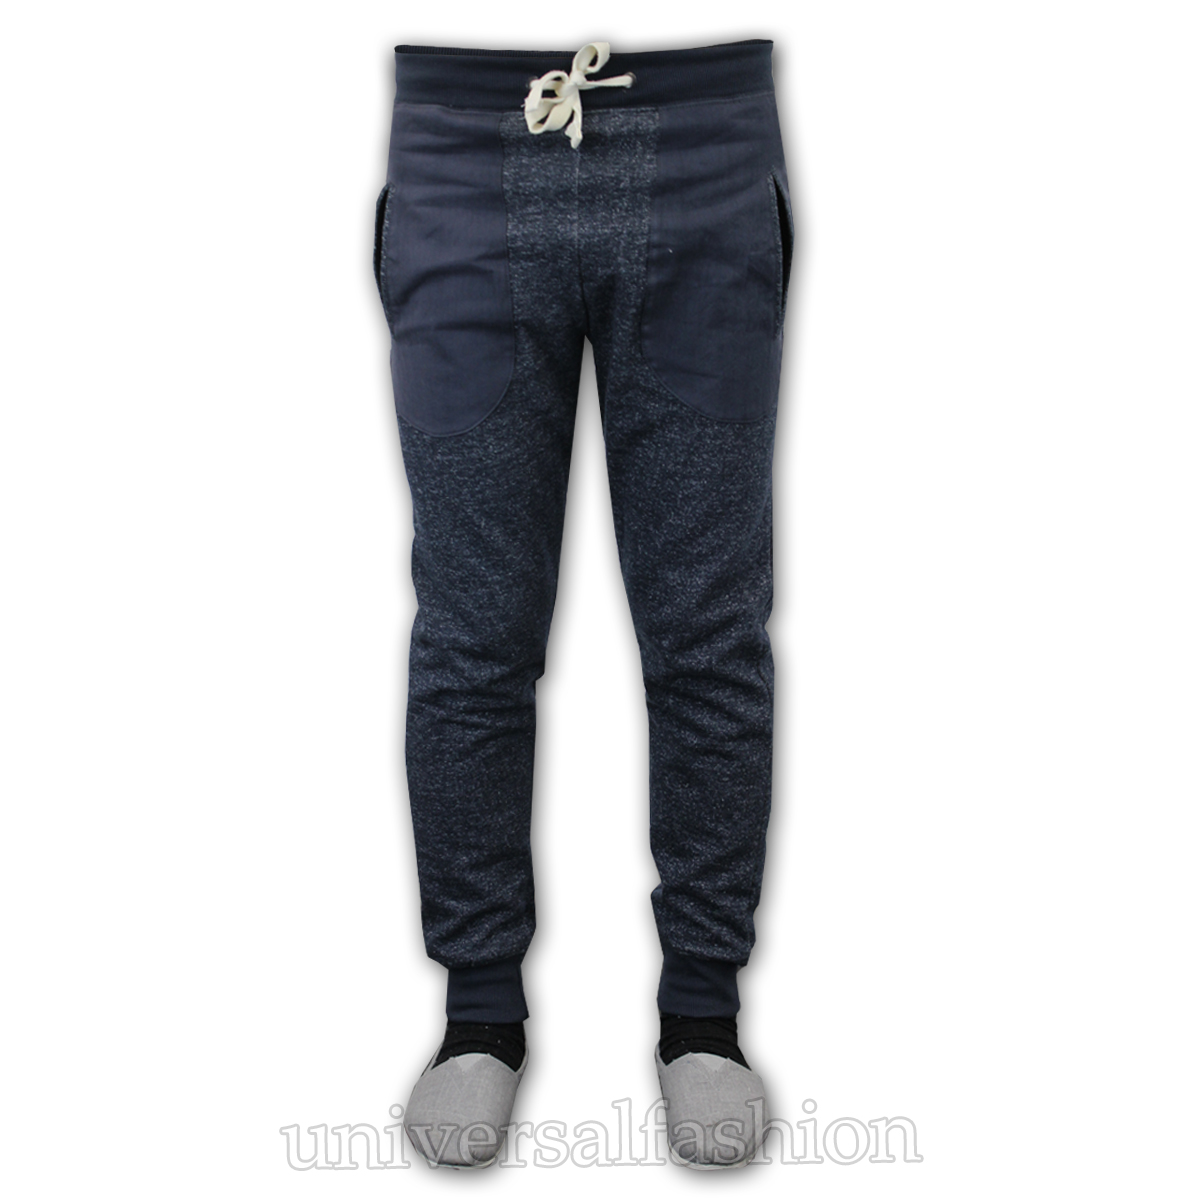 Browse our range of Skinny Pants teraisompcz8d.gak Now Avail. In USA · Buy Direct For Best Deals · AW16 Garms Arriving Daily · Sizes XS to XL.